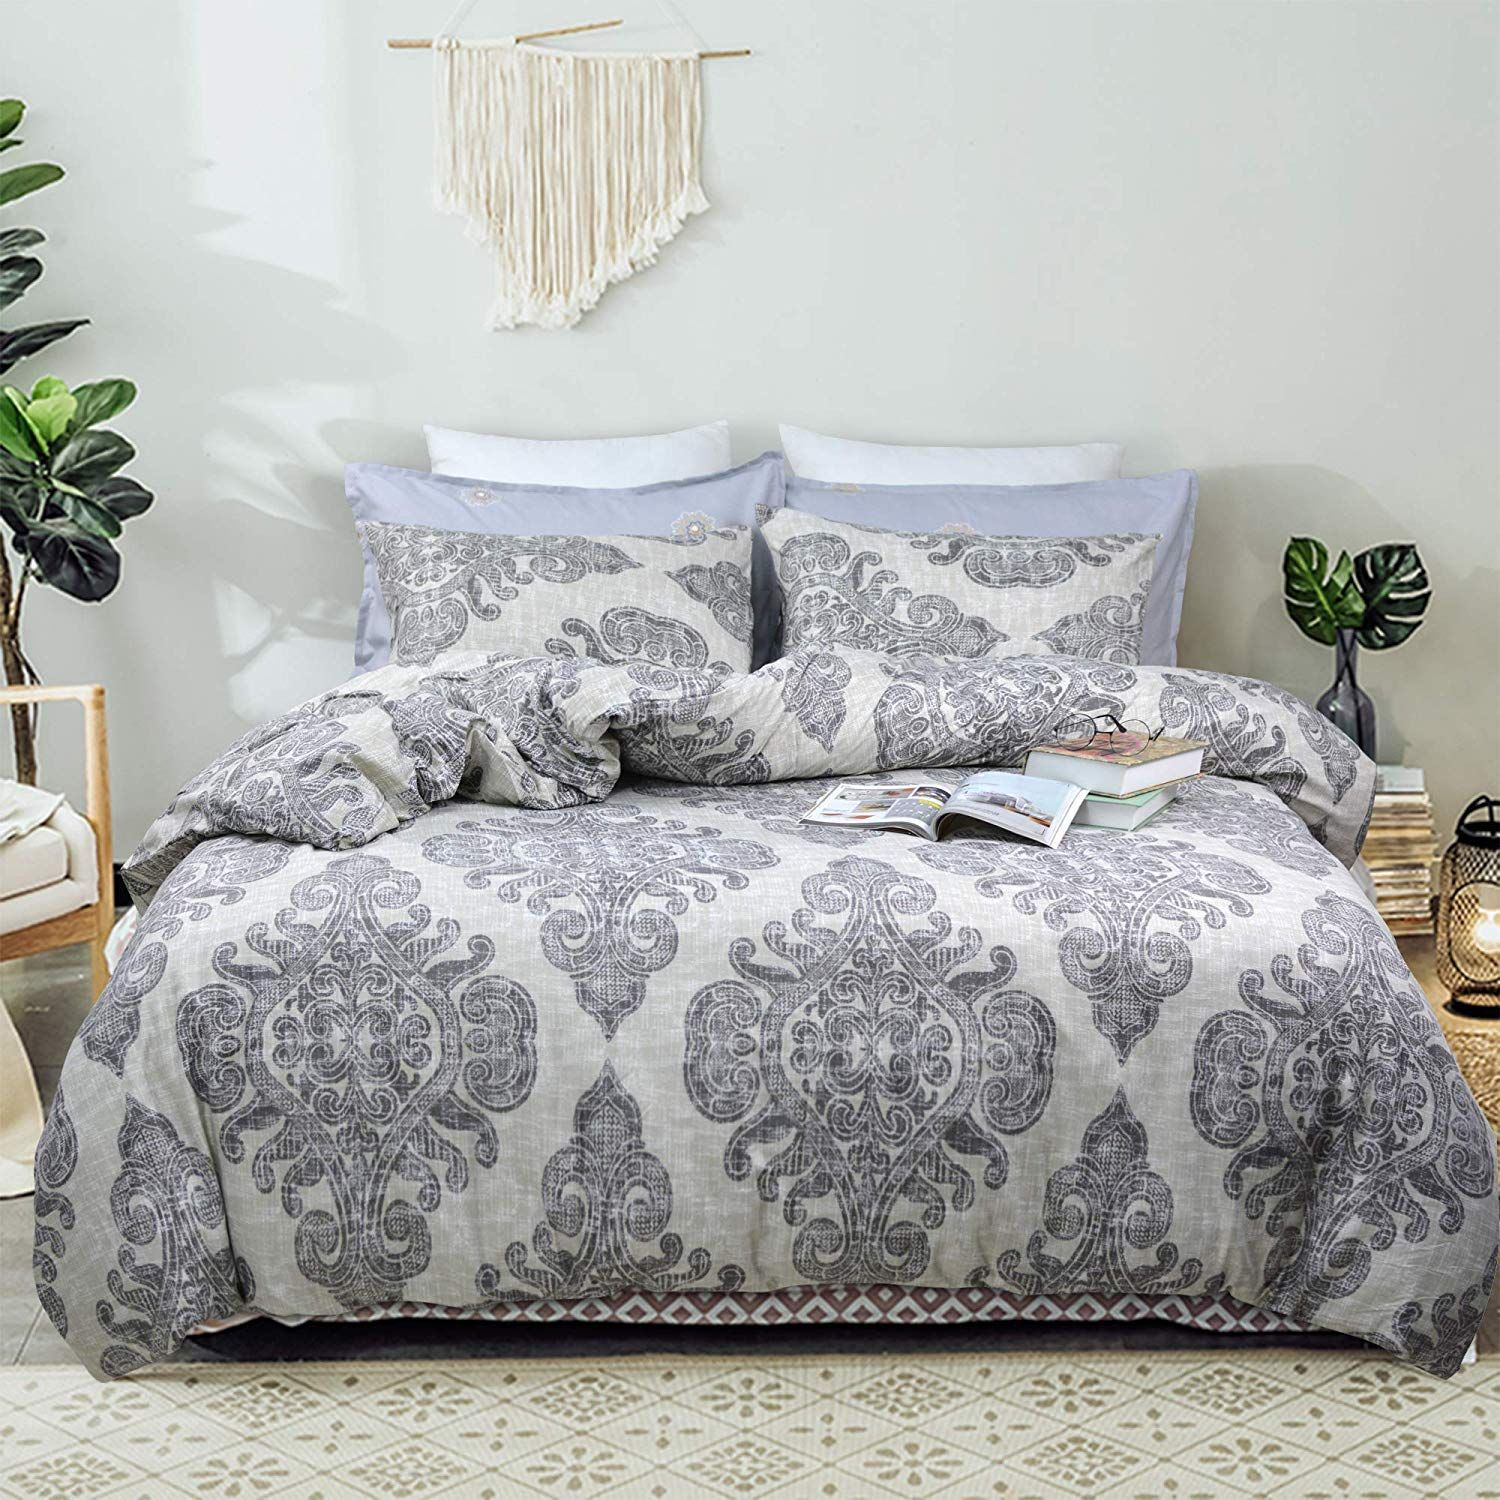 Farmhouse Comforters Rustic Comforters Farmhouse Goals In 2020 Comforter Sets Farmhouse Bedding Sets Bedding Sets